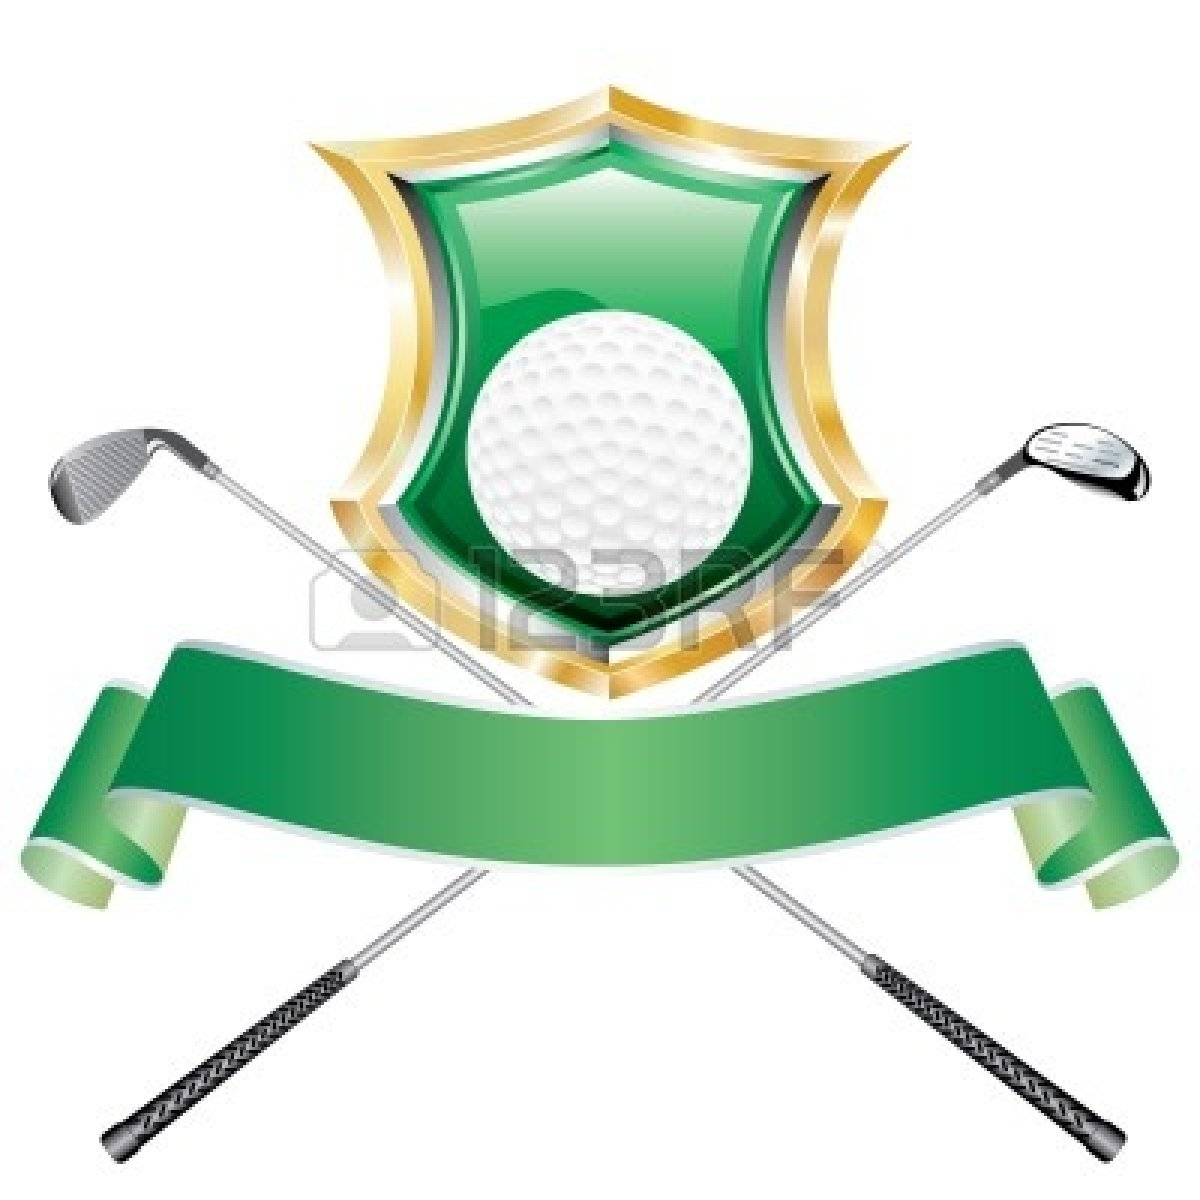 crossed%20golf%20clubs%20with%20golf%20ball